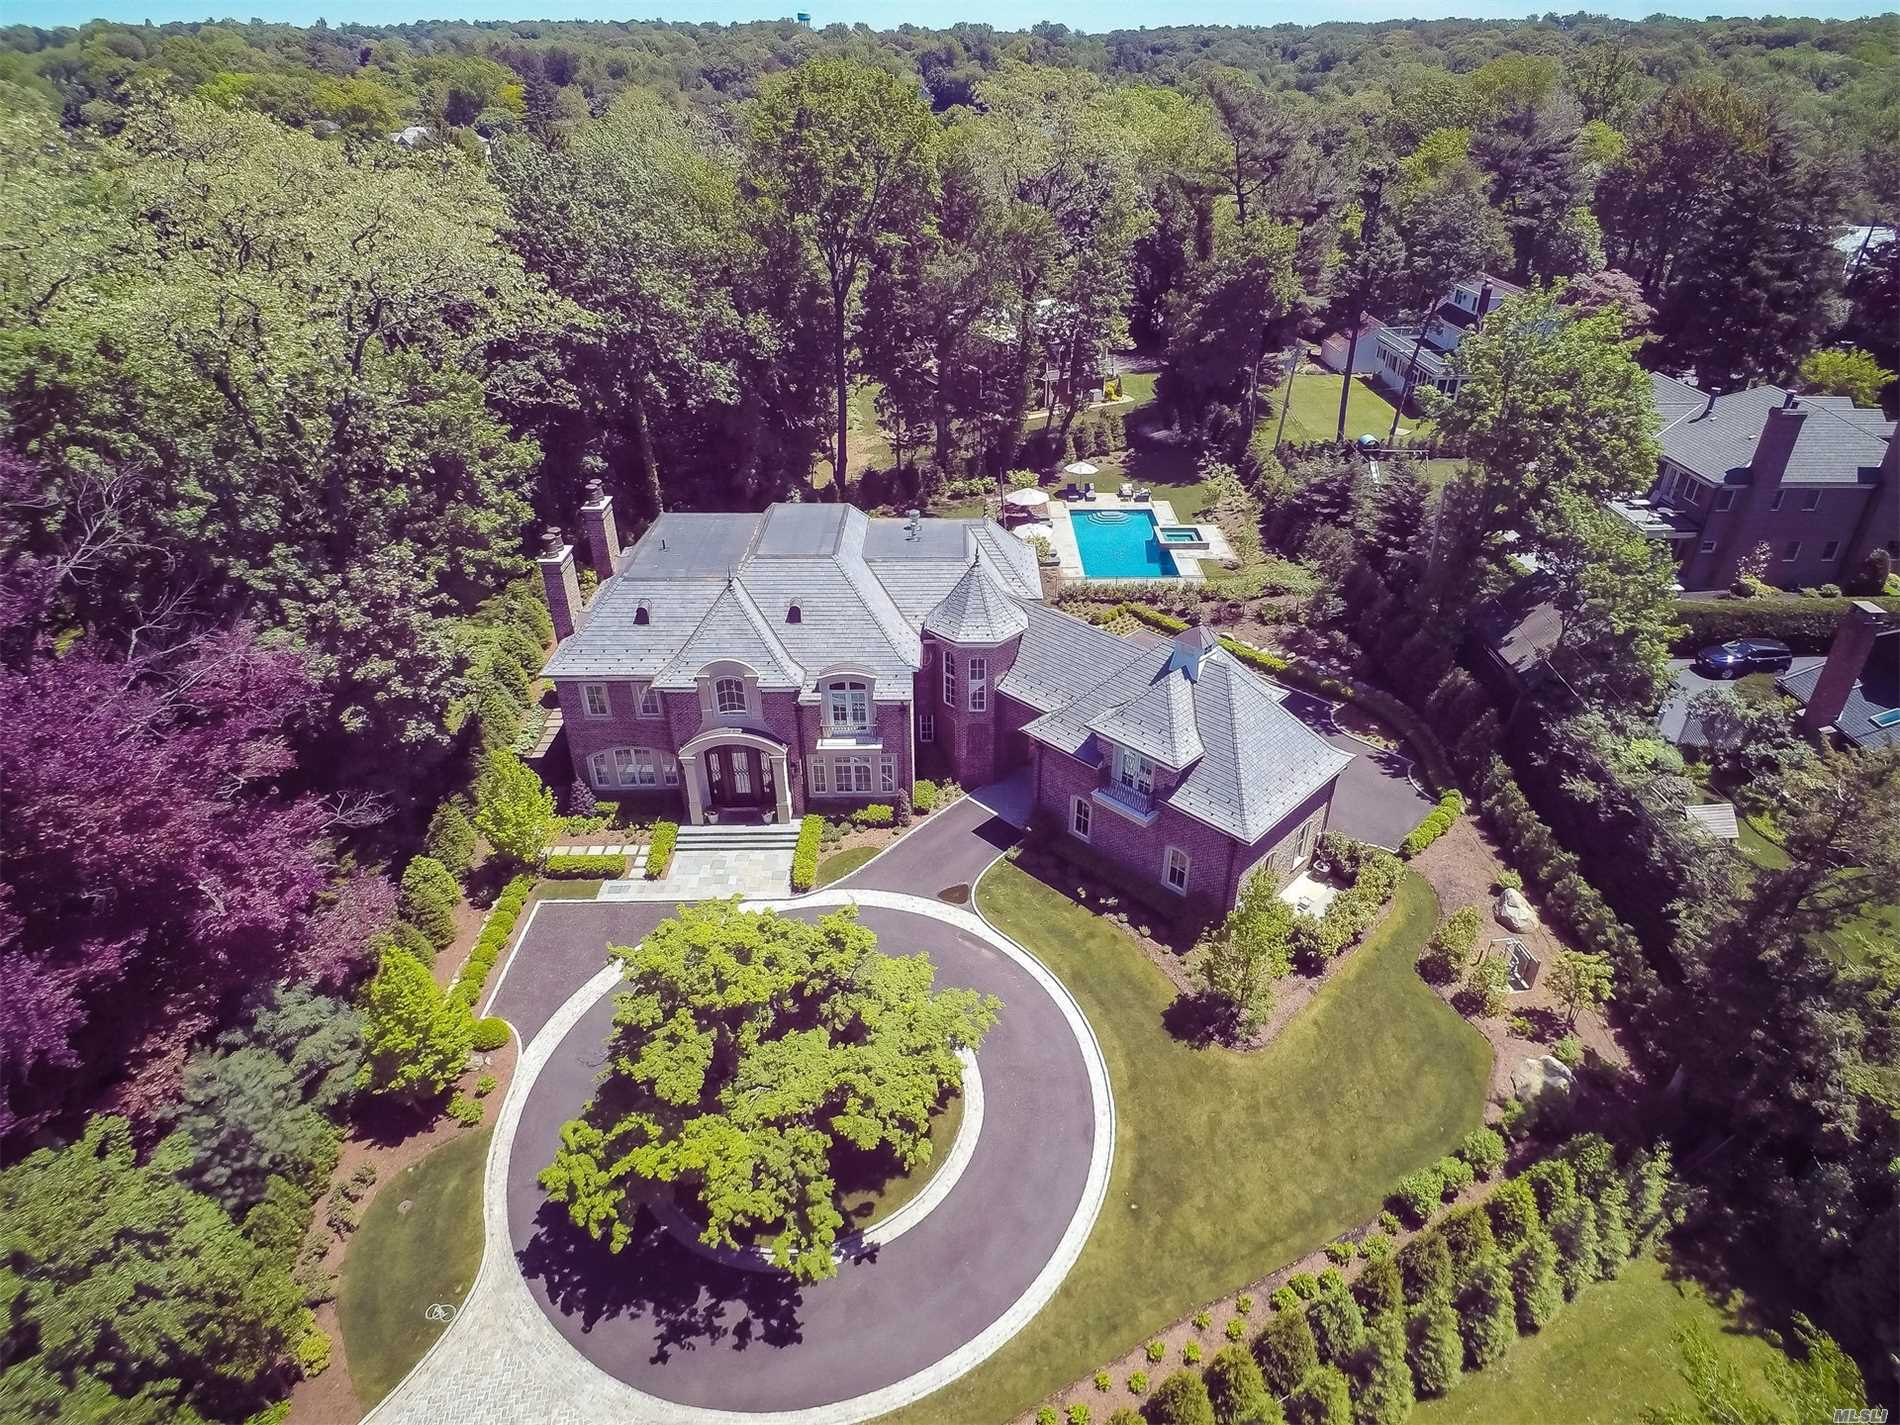 Exquisite French Normandy Custom Built Home Completed In 2017. 6100 Sq. Ft Of Pure Luxury And Tranquility On .8 Acres With Gunite Salt Water Pool & Waterfall Spa. Landscape Design By The Laurel Group Features Year Round Flowering Specimen Plantings, Outdoor Kitchen With Built In Bbq And Rotisserie, And Gas Fire Pit. Three Car Heated Garage And Circular Driveway. 60Kw Whole House Generator. Sonos Sound And Lutron Programmable Lighting Throughout Entire House**Taxes Do Not Reflect New Construction